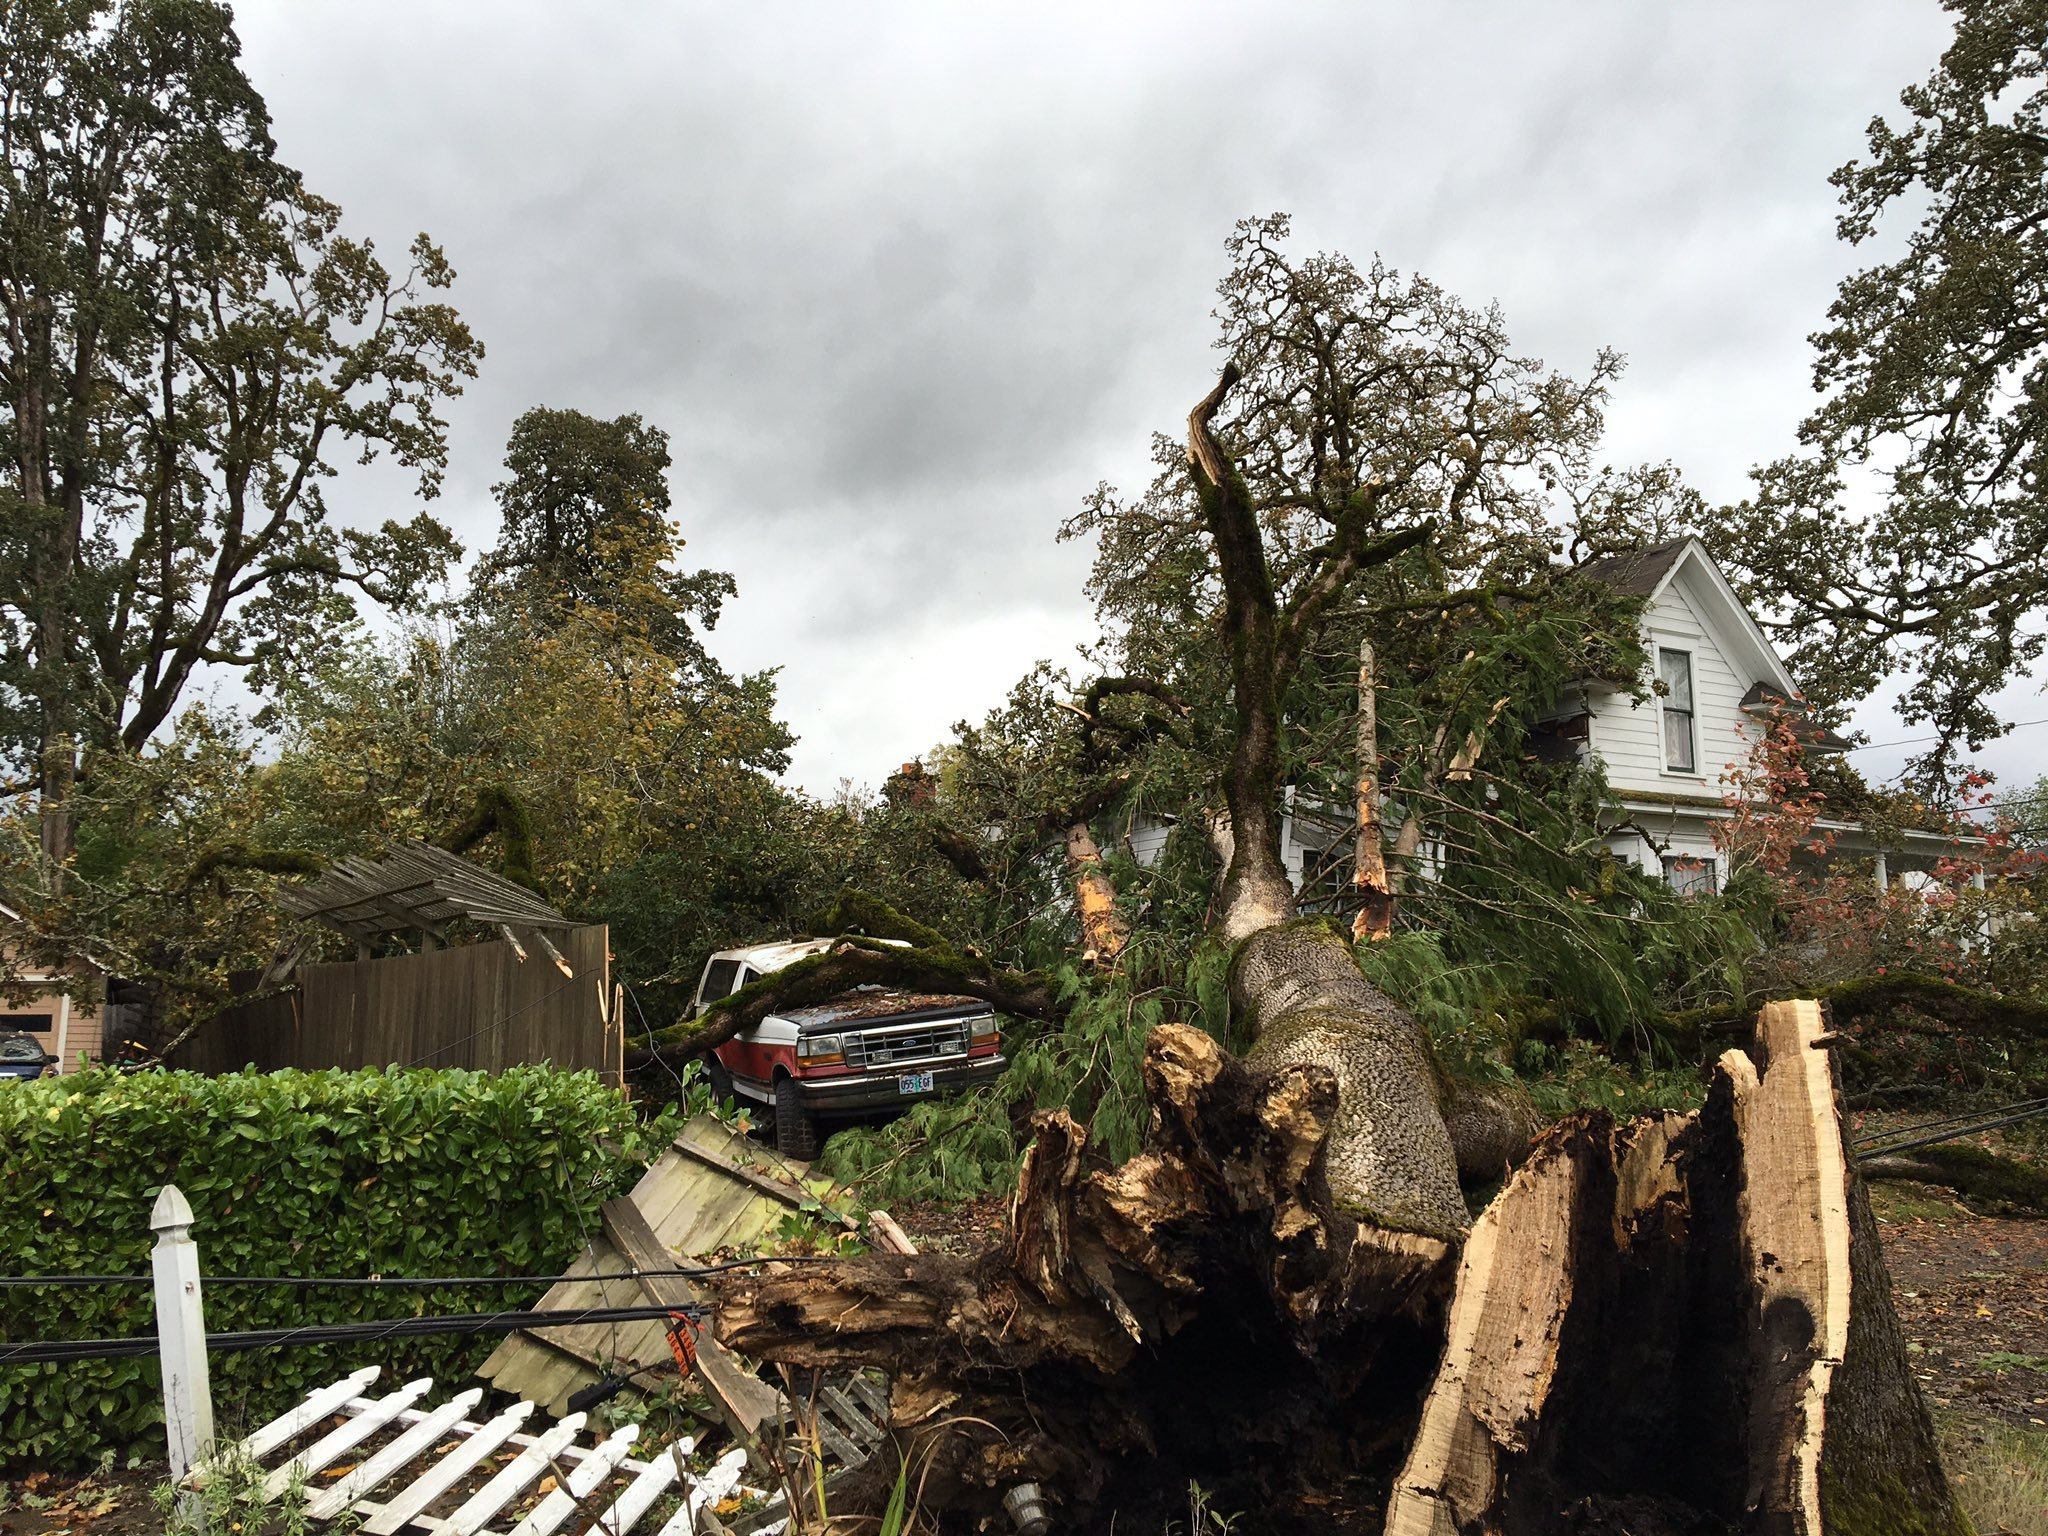 Firefighters said nobody was hurt when this tree fell onto a home in Forest Grove (Photo: Forest Grove Fire)